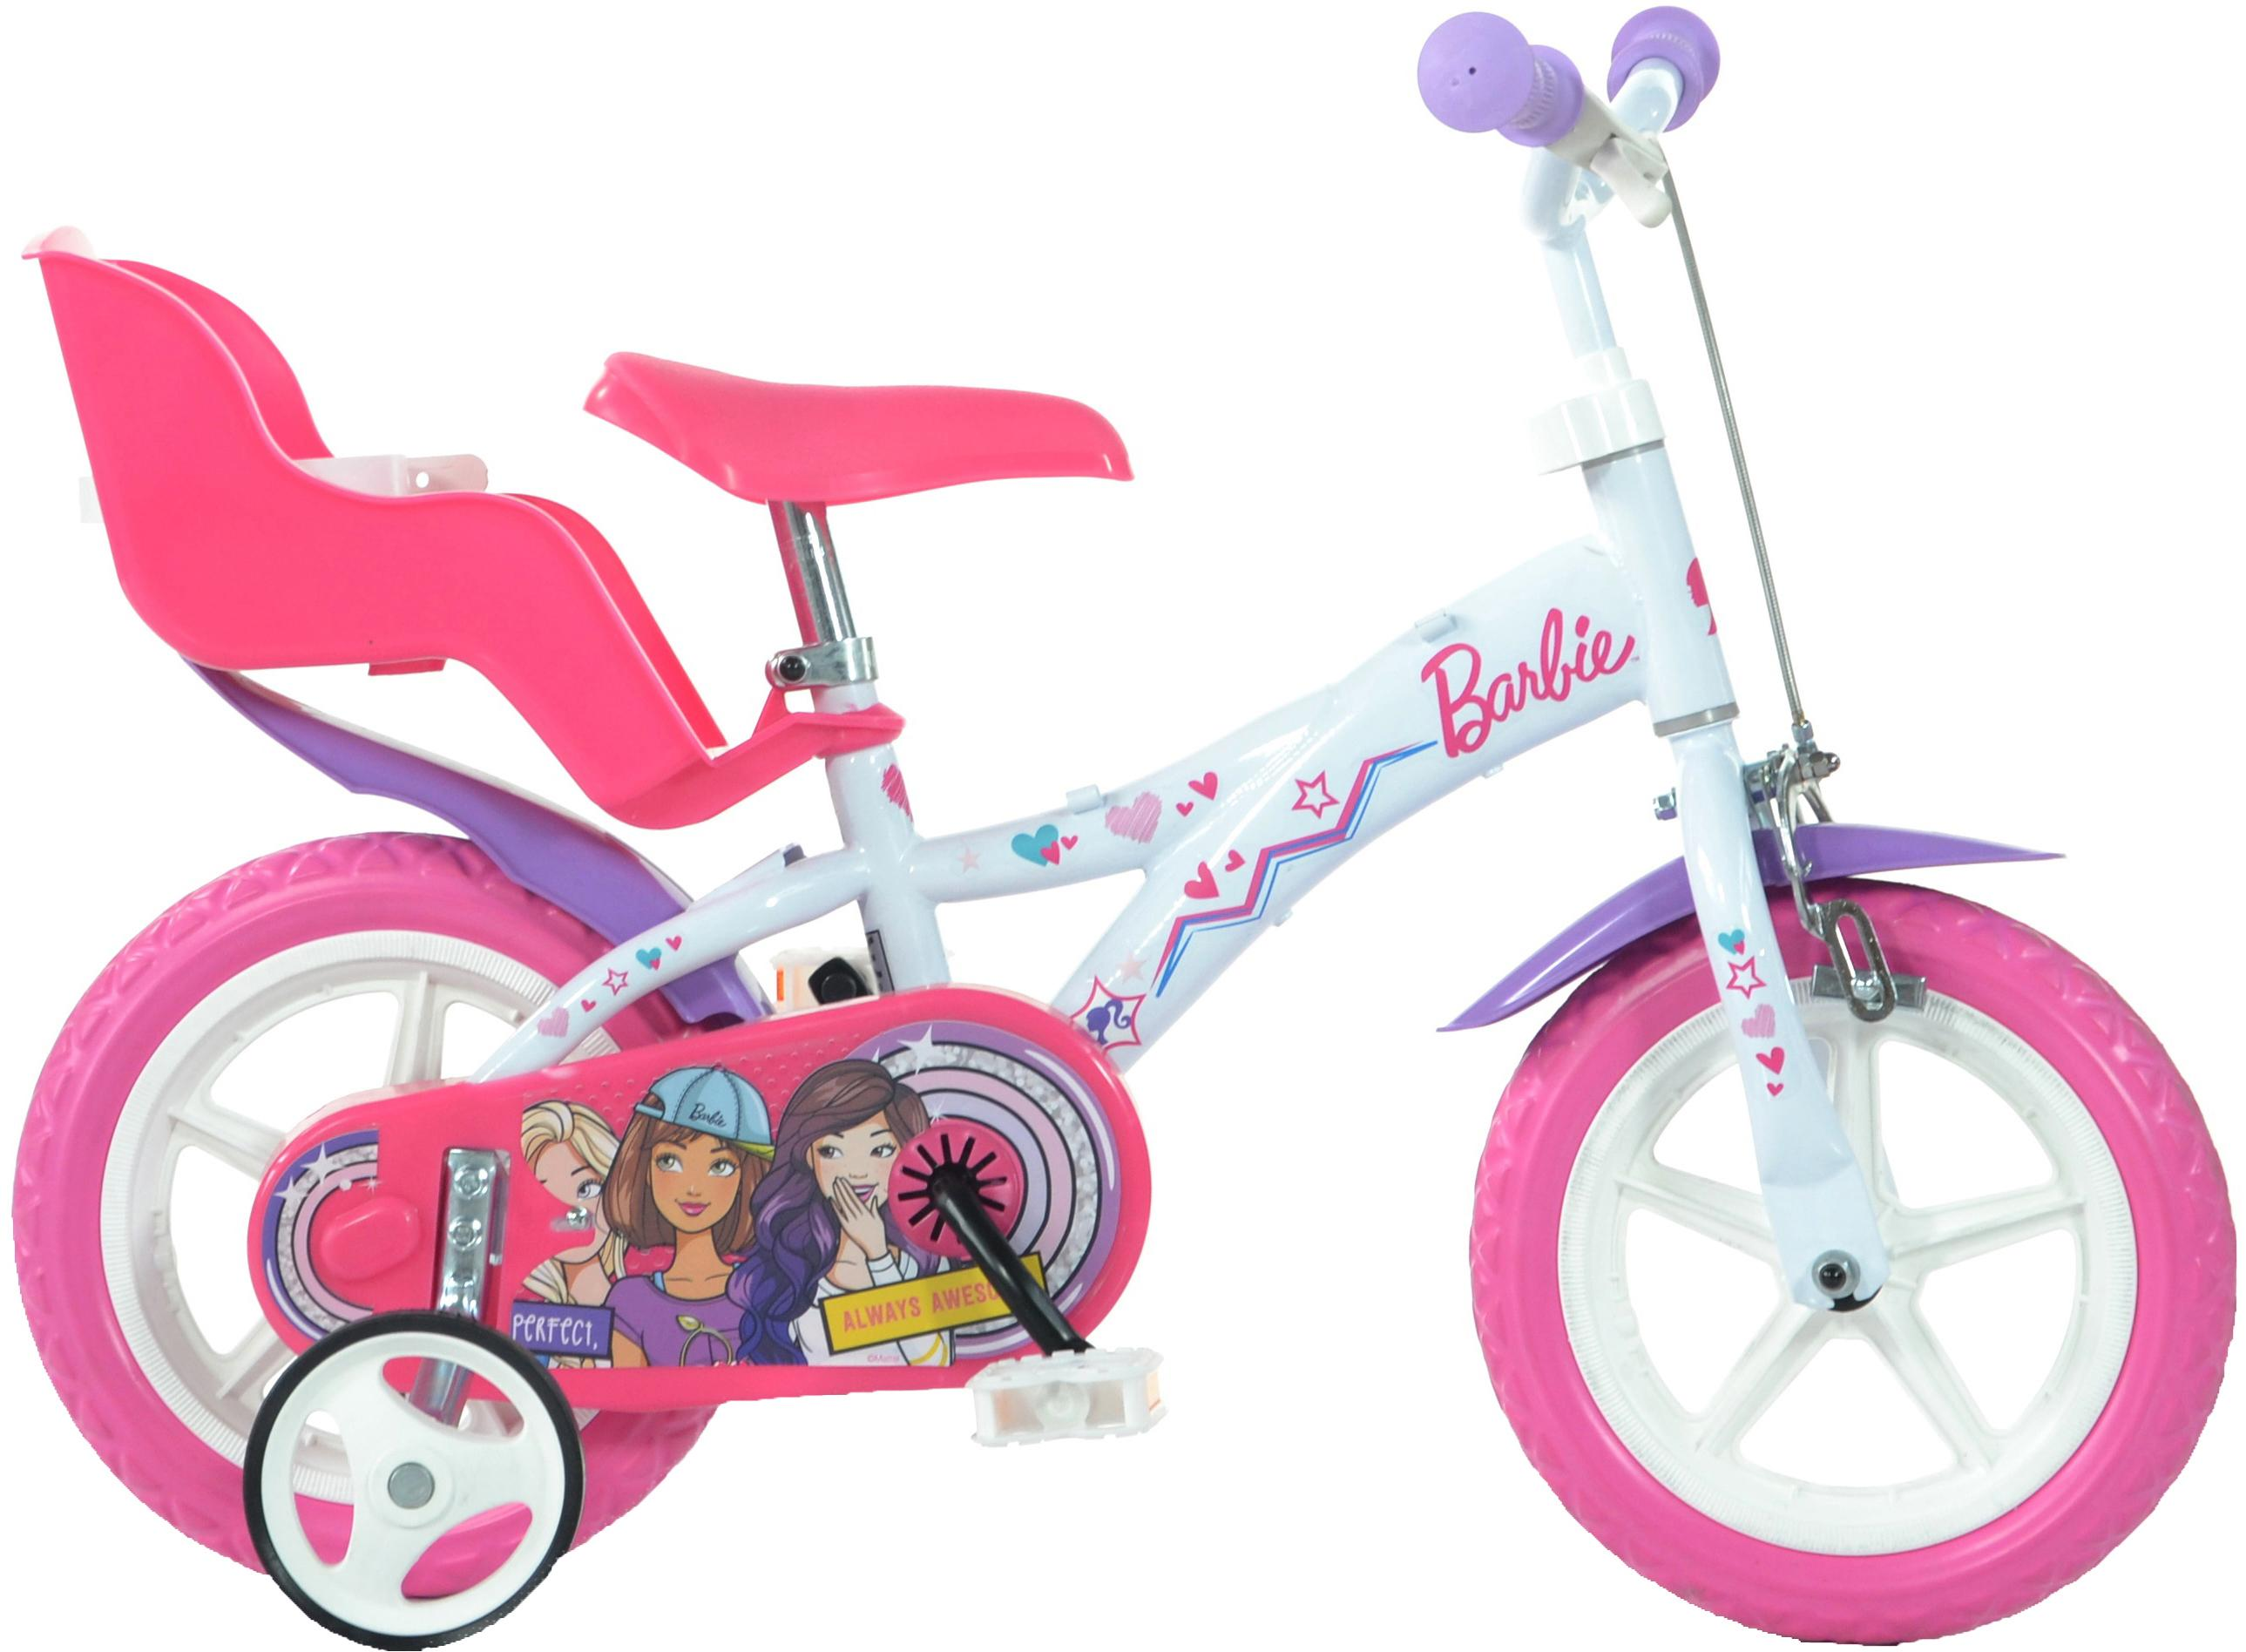 Barbie Kids Bike   12 Inch Wheel